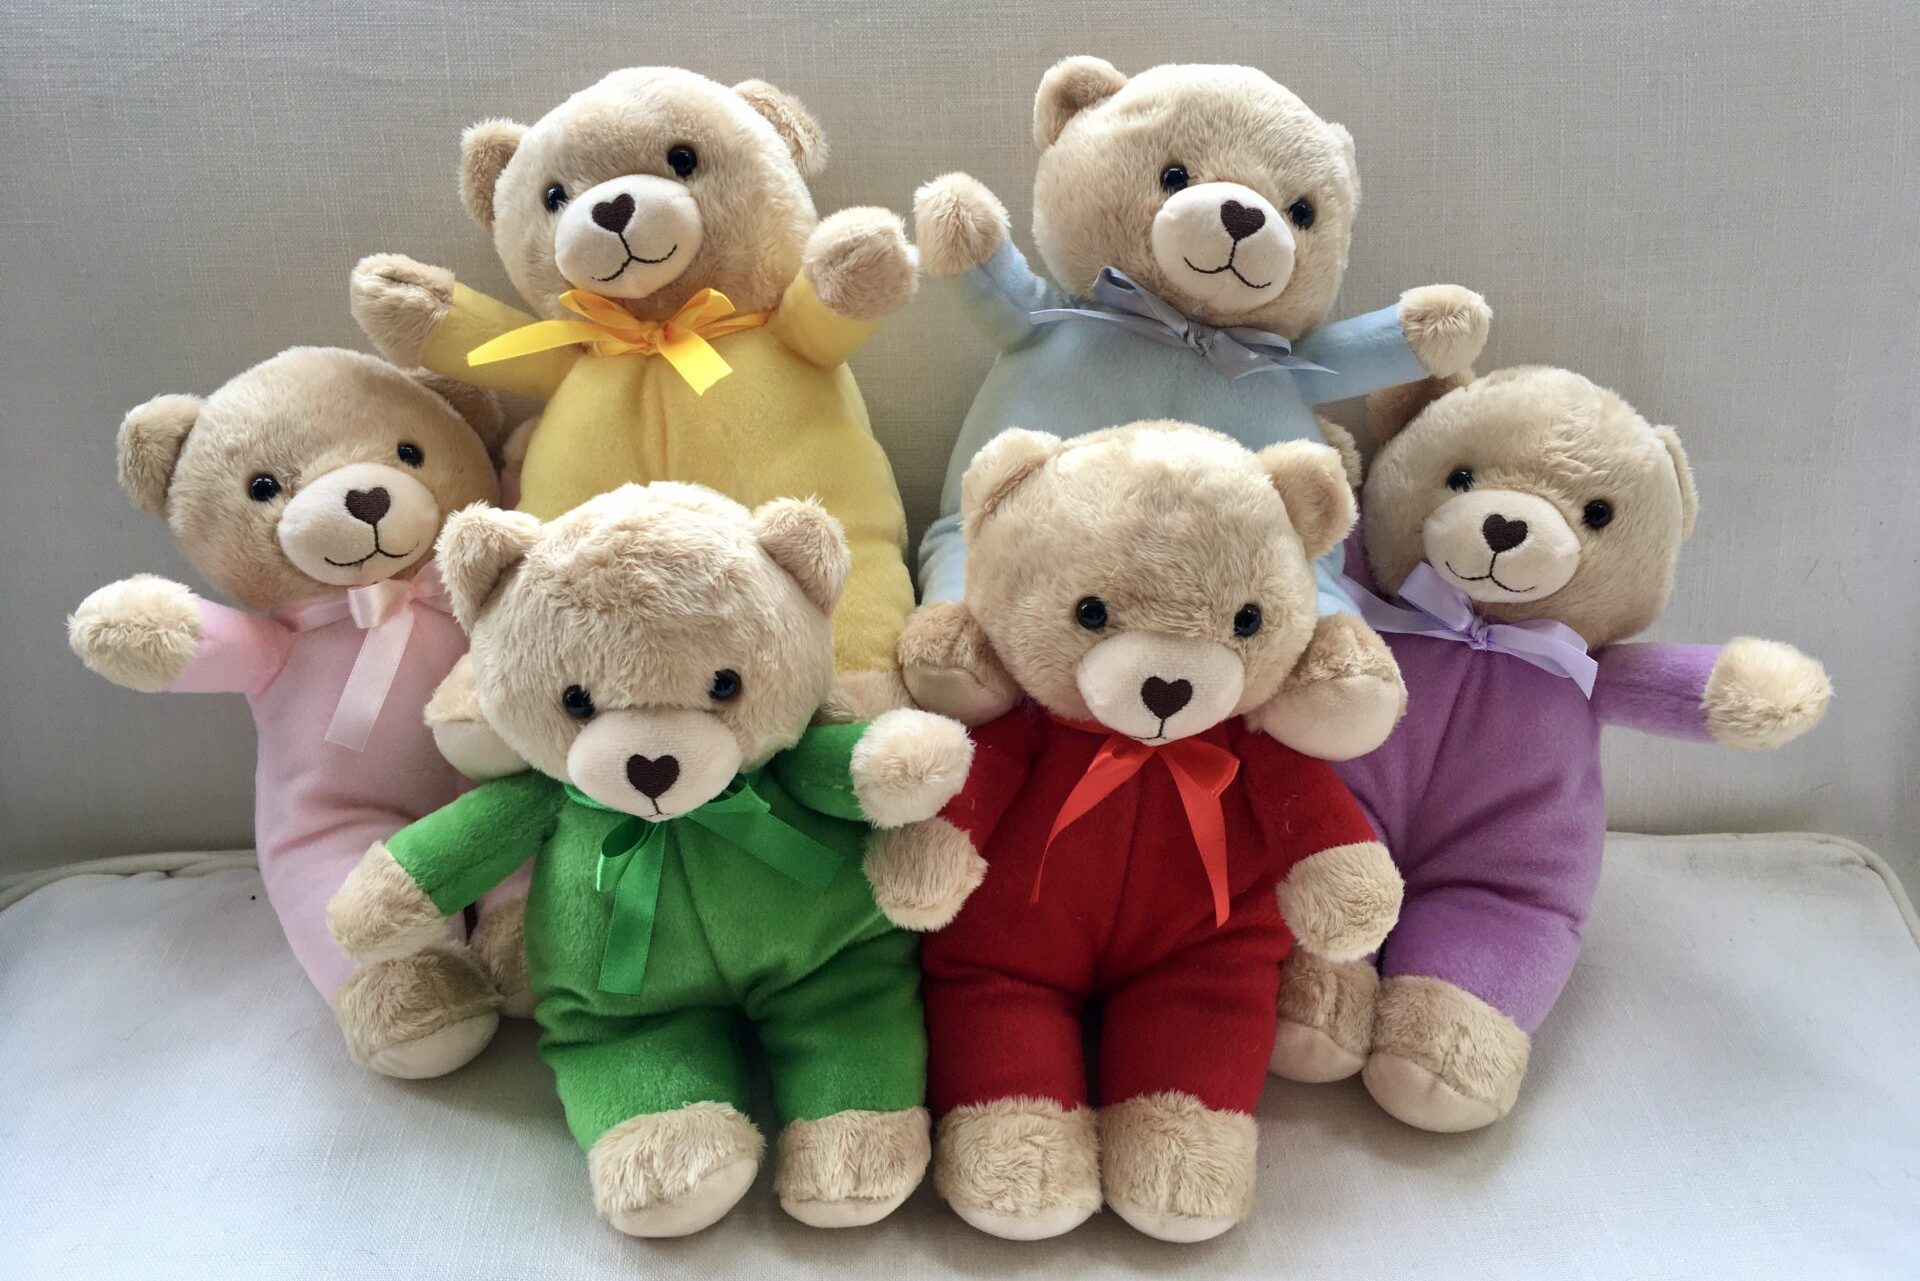 The Teddies with the Heart Shaped Nose